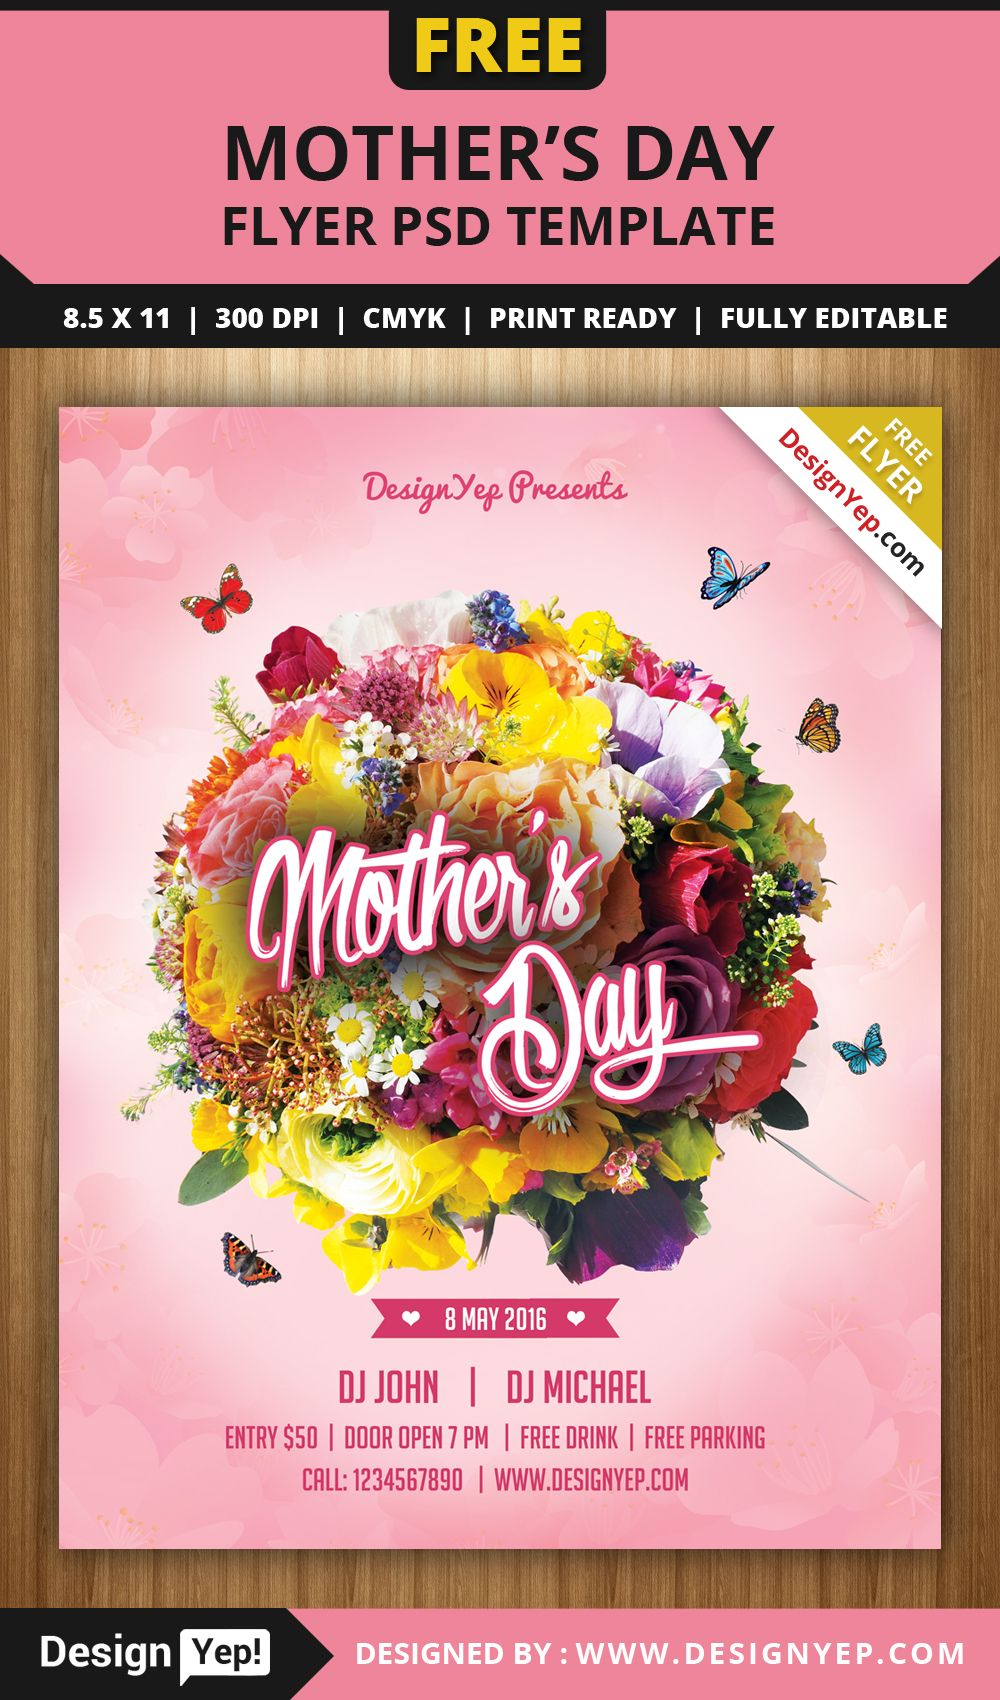 Free-Mothers-Day-Flyer-PSD-Template-5656-Designyep | Free Flyers ...